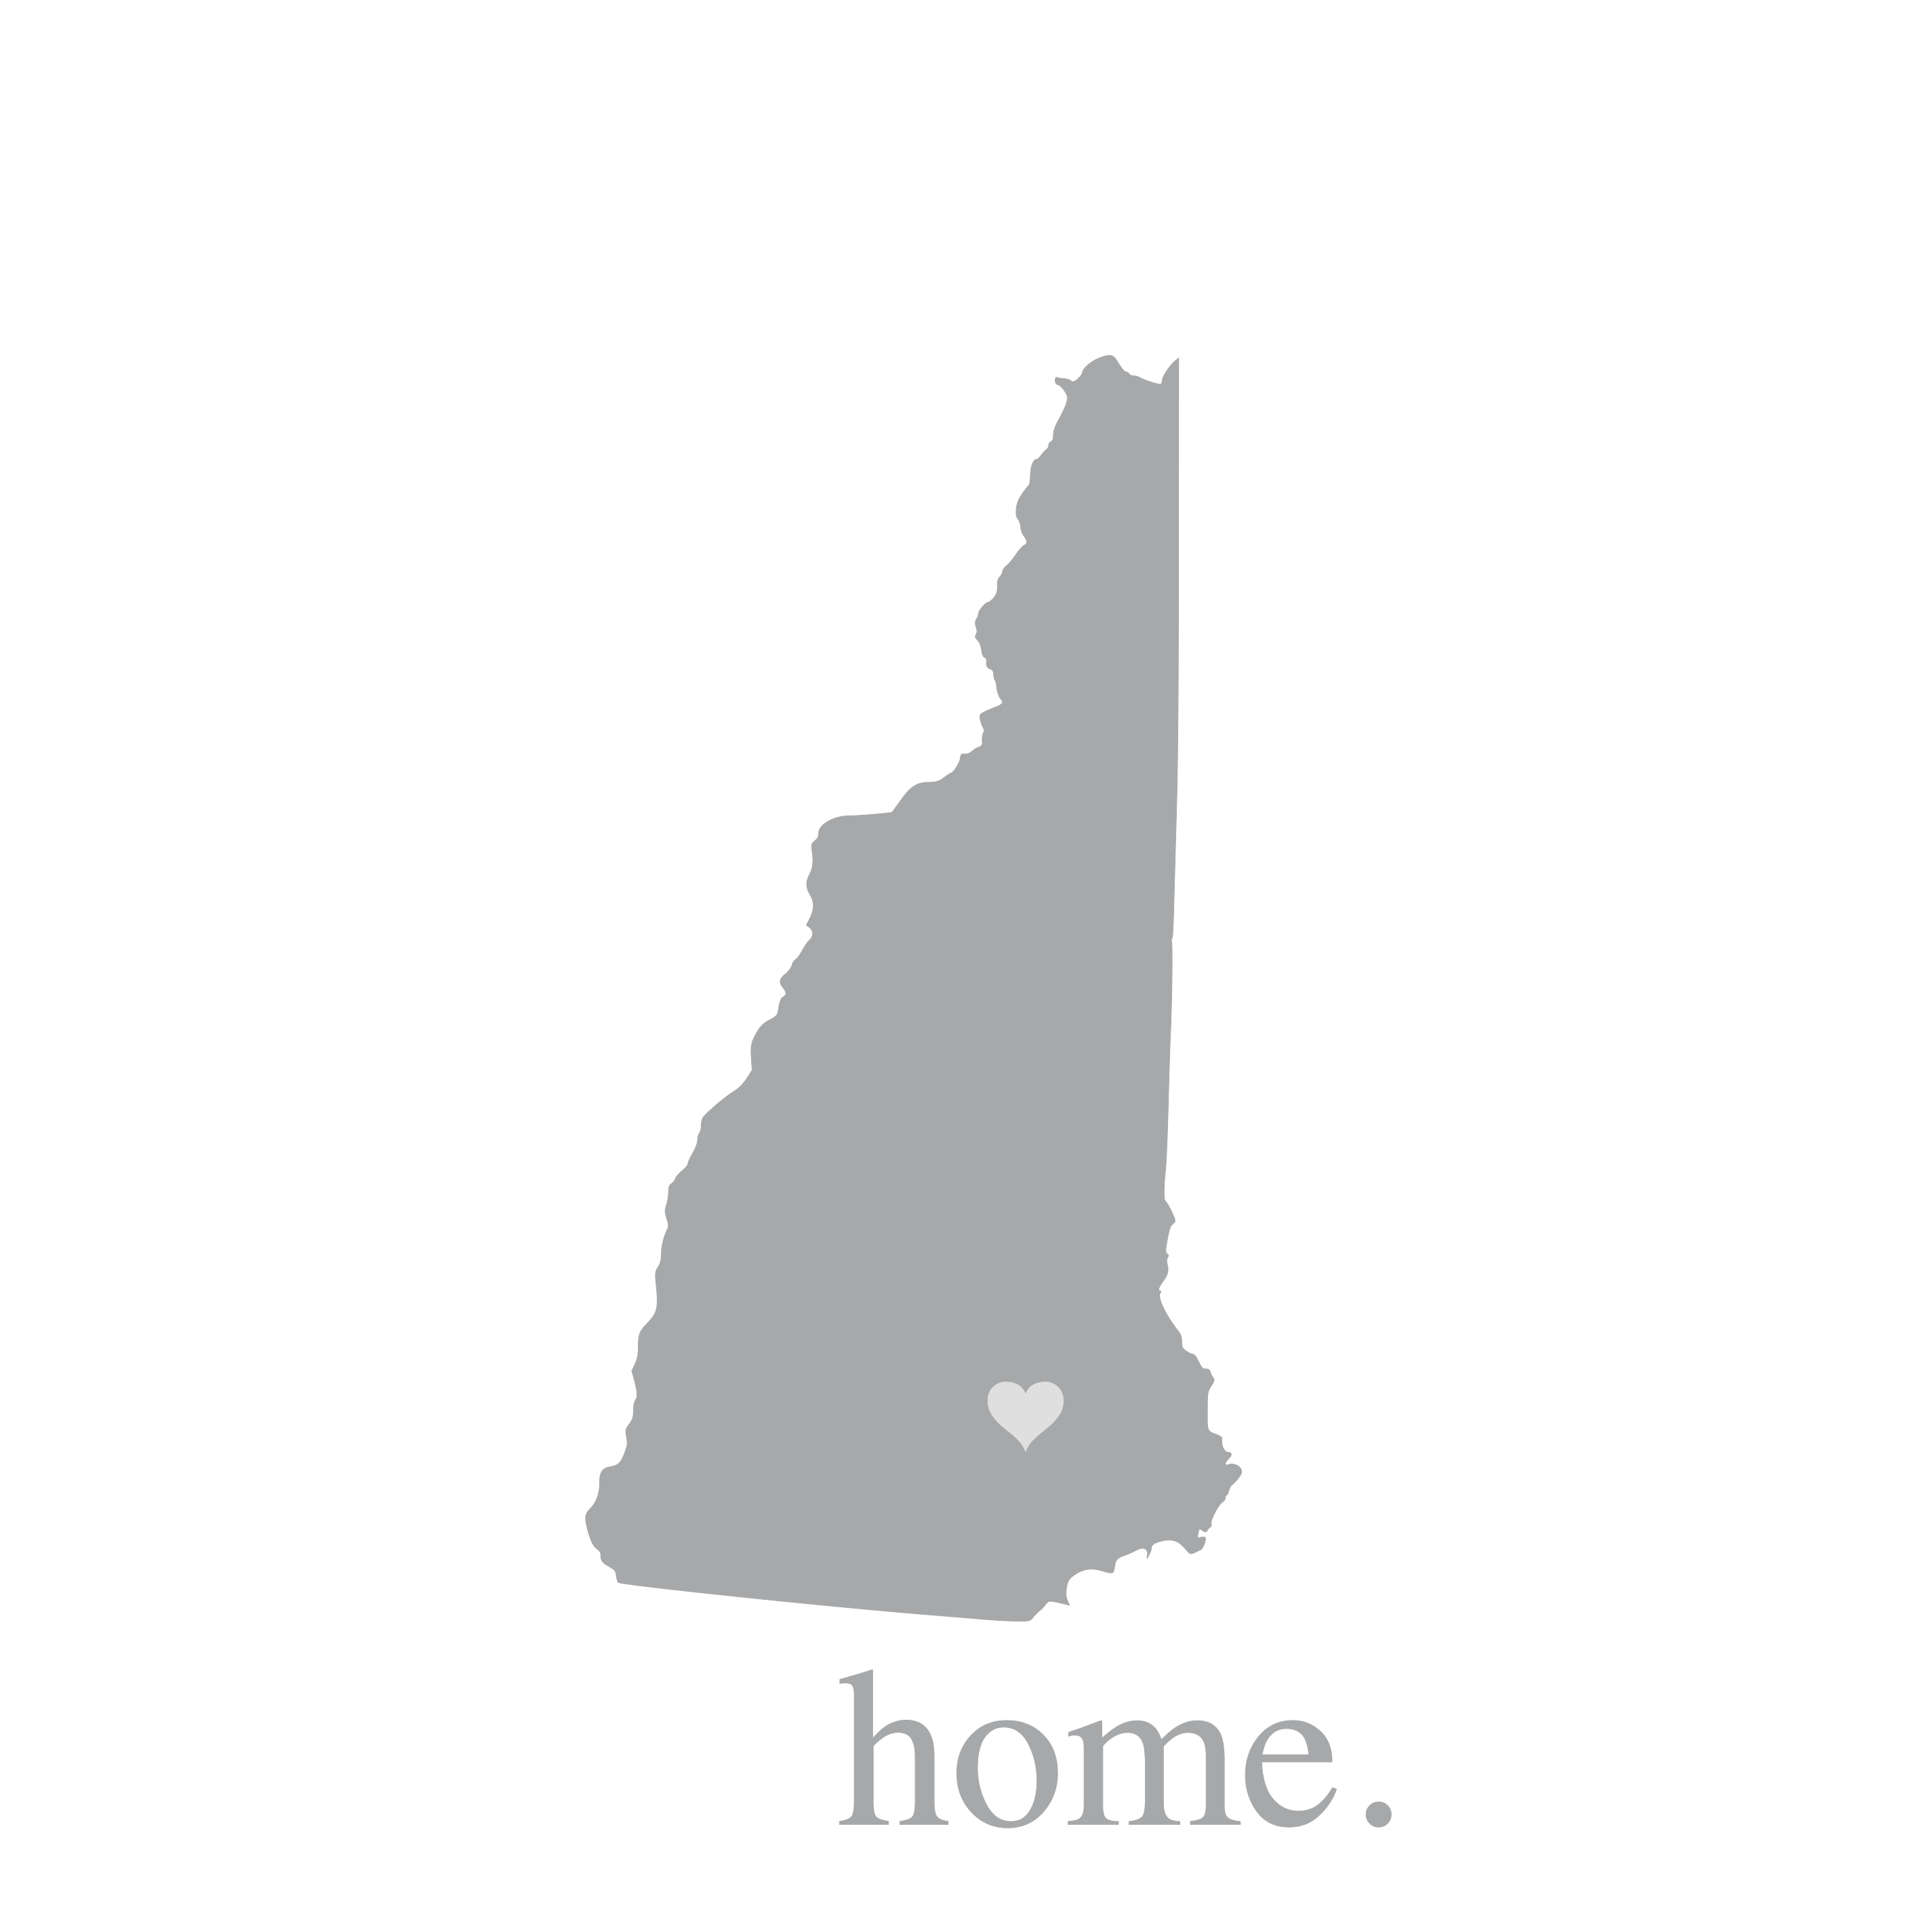 8280 New Hampshire Home State